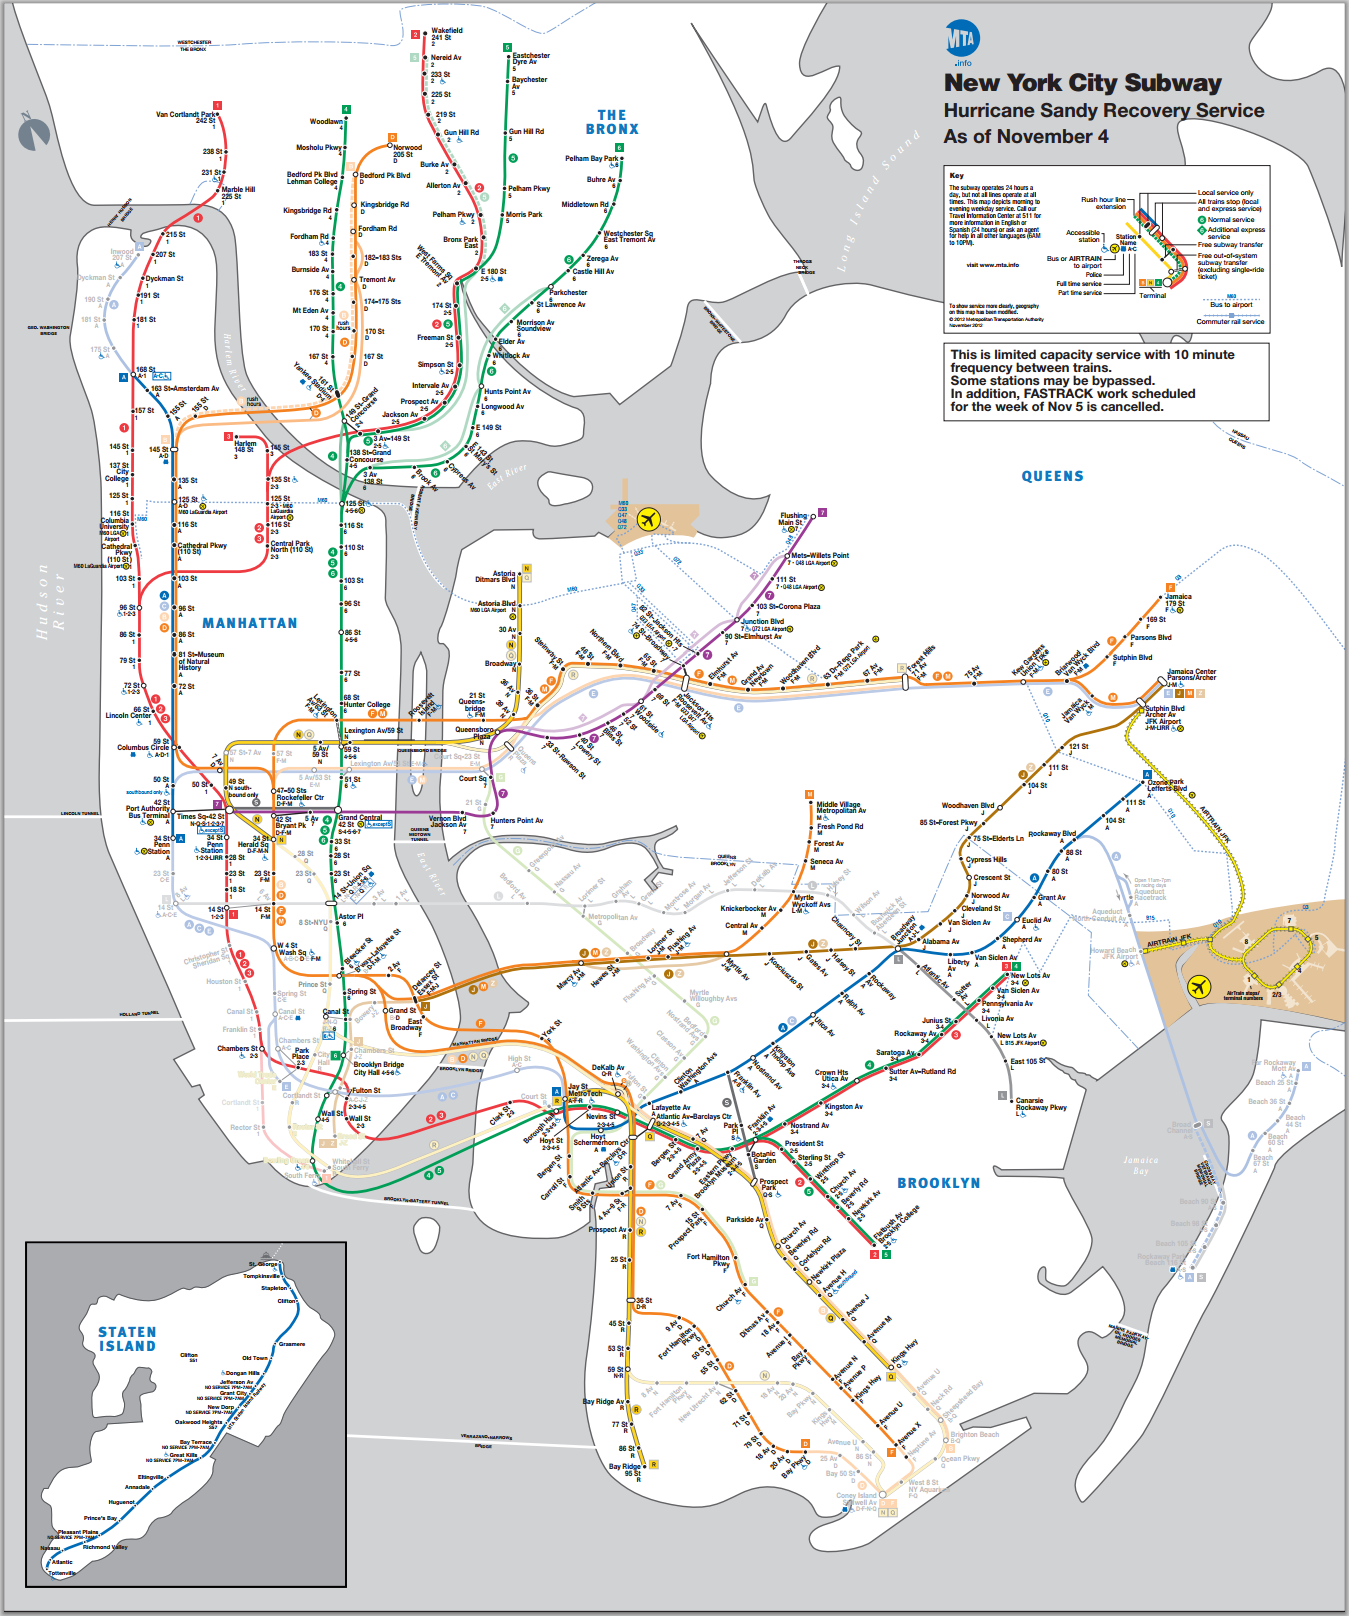 Updated NYC Subway Map November 4